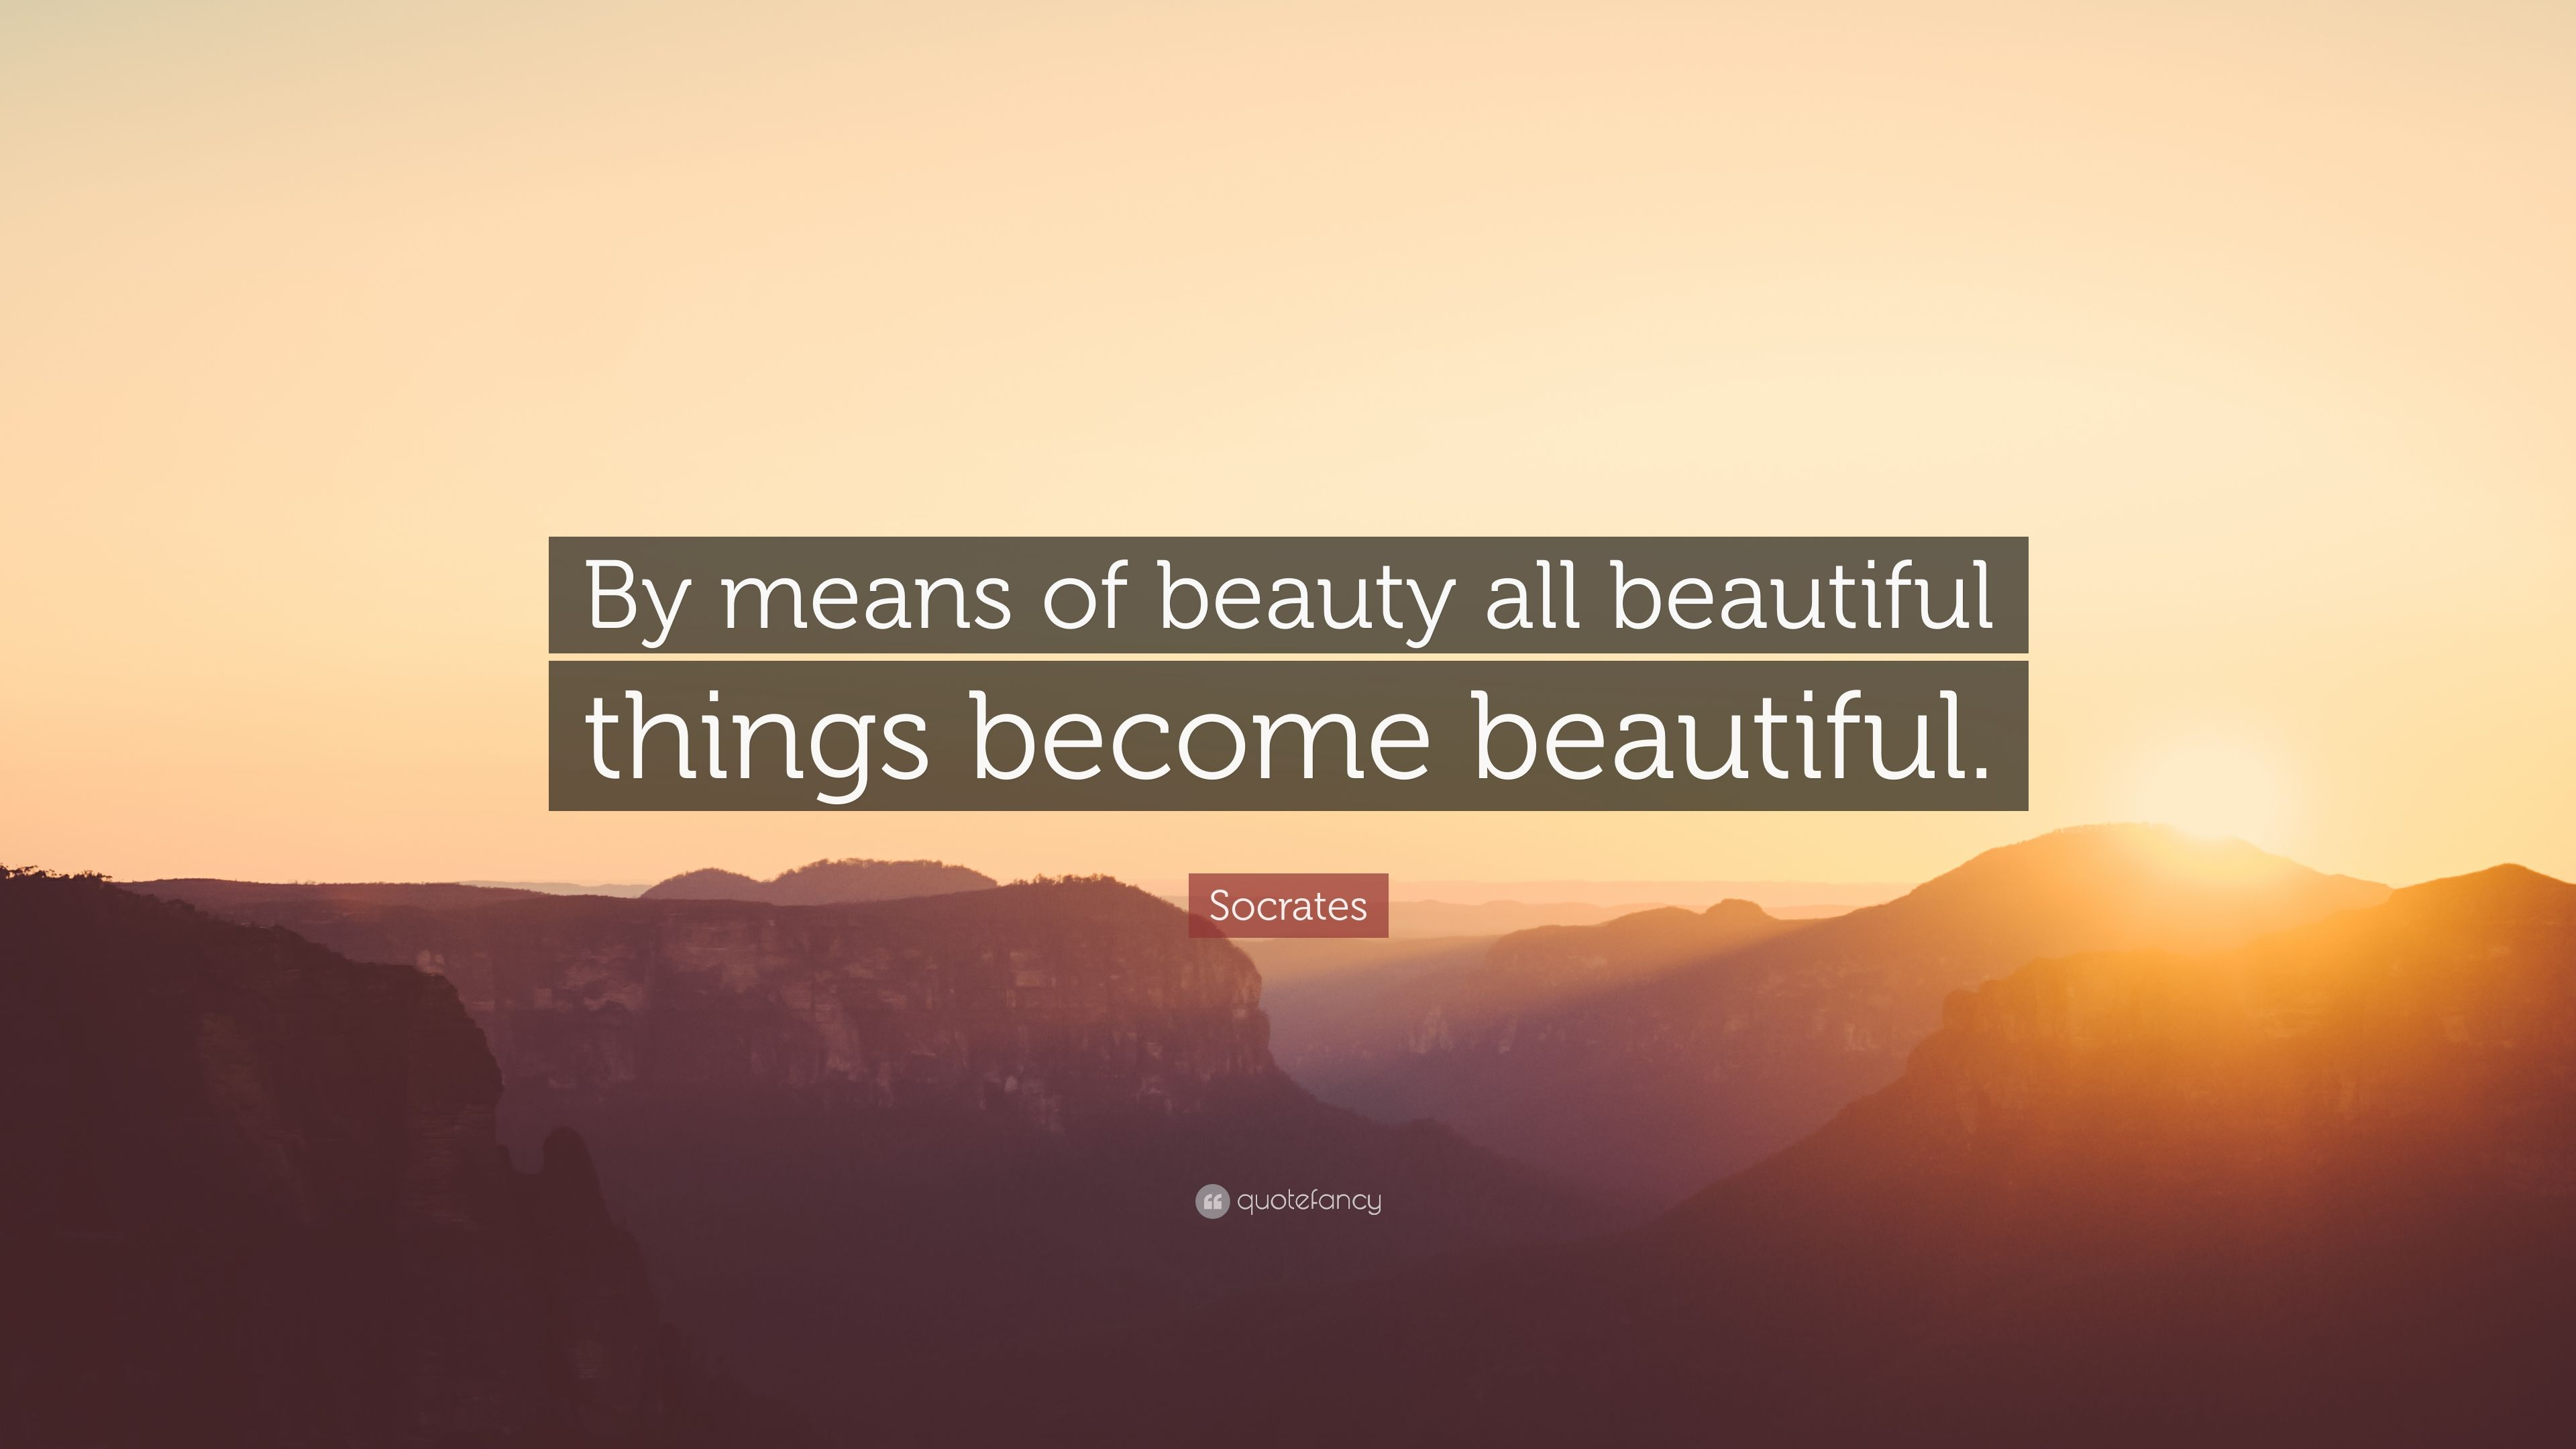 socrates and beauty